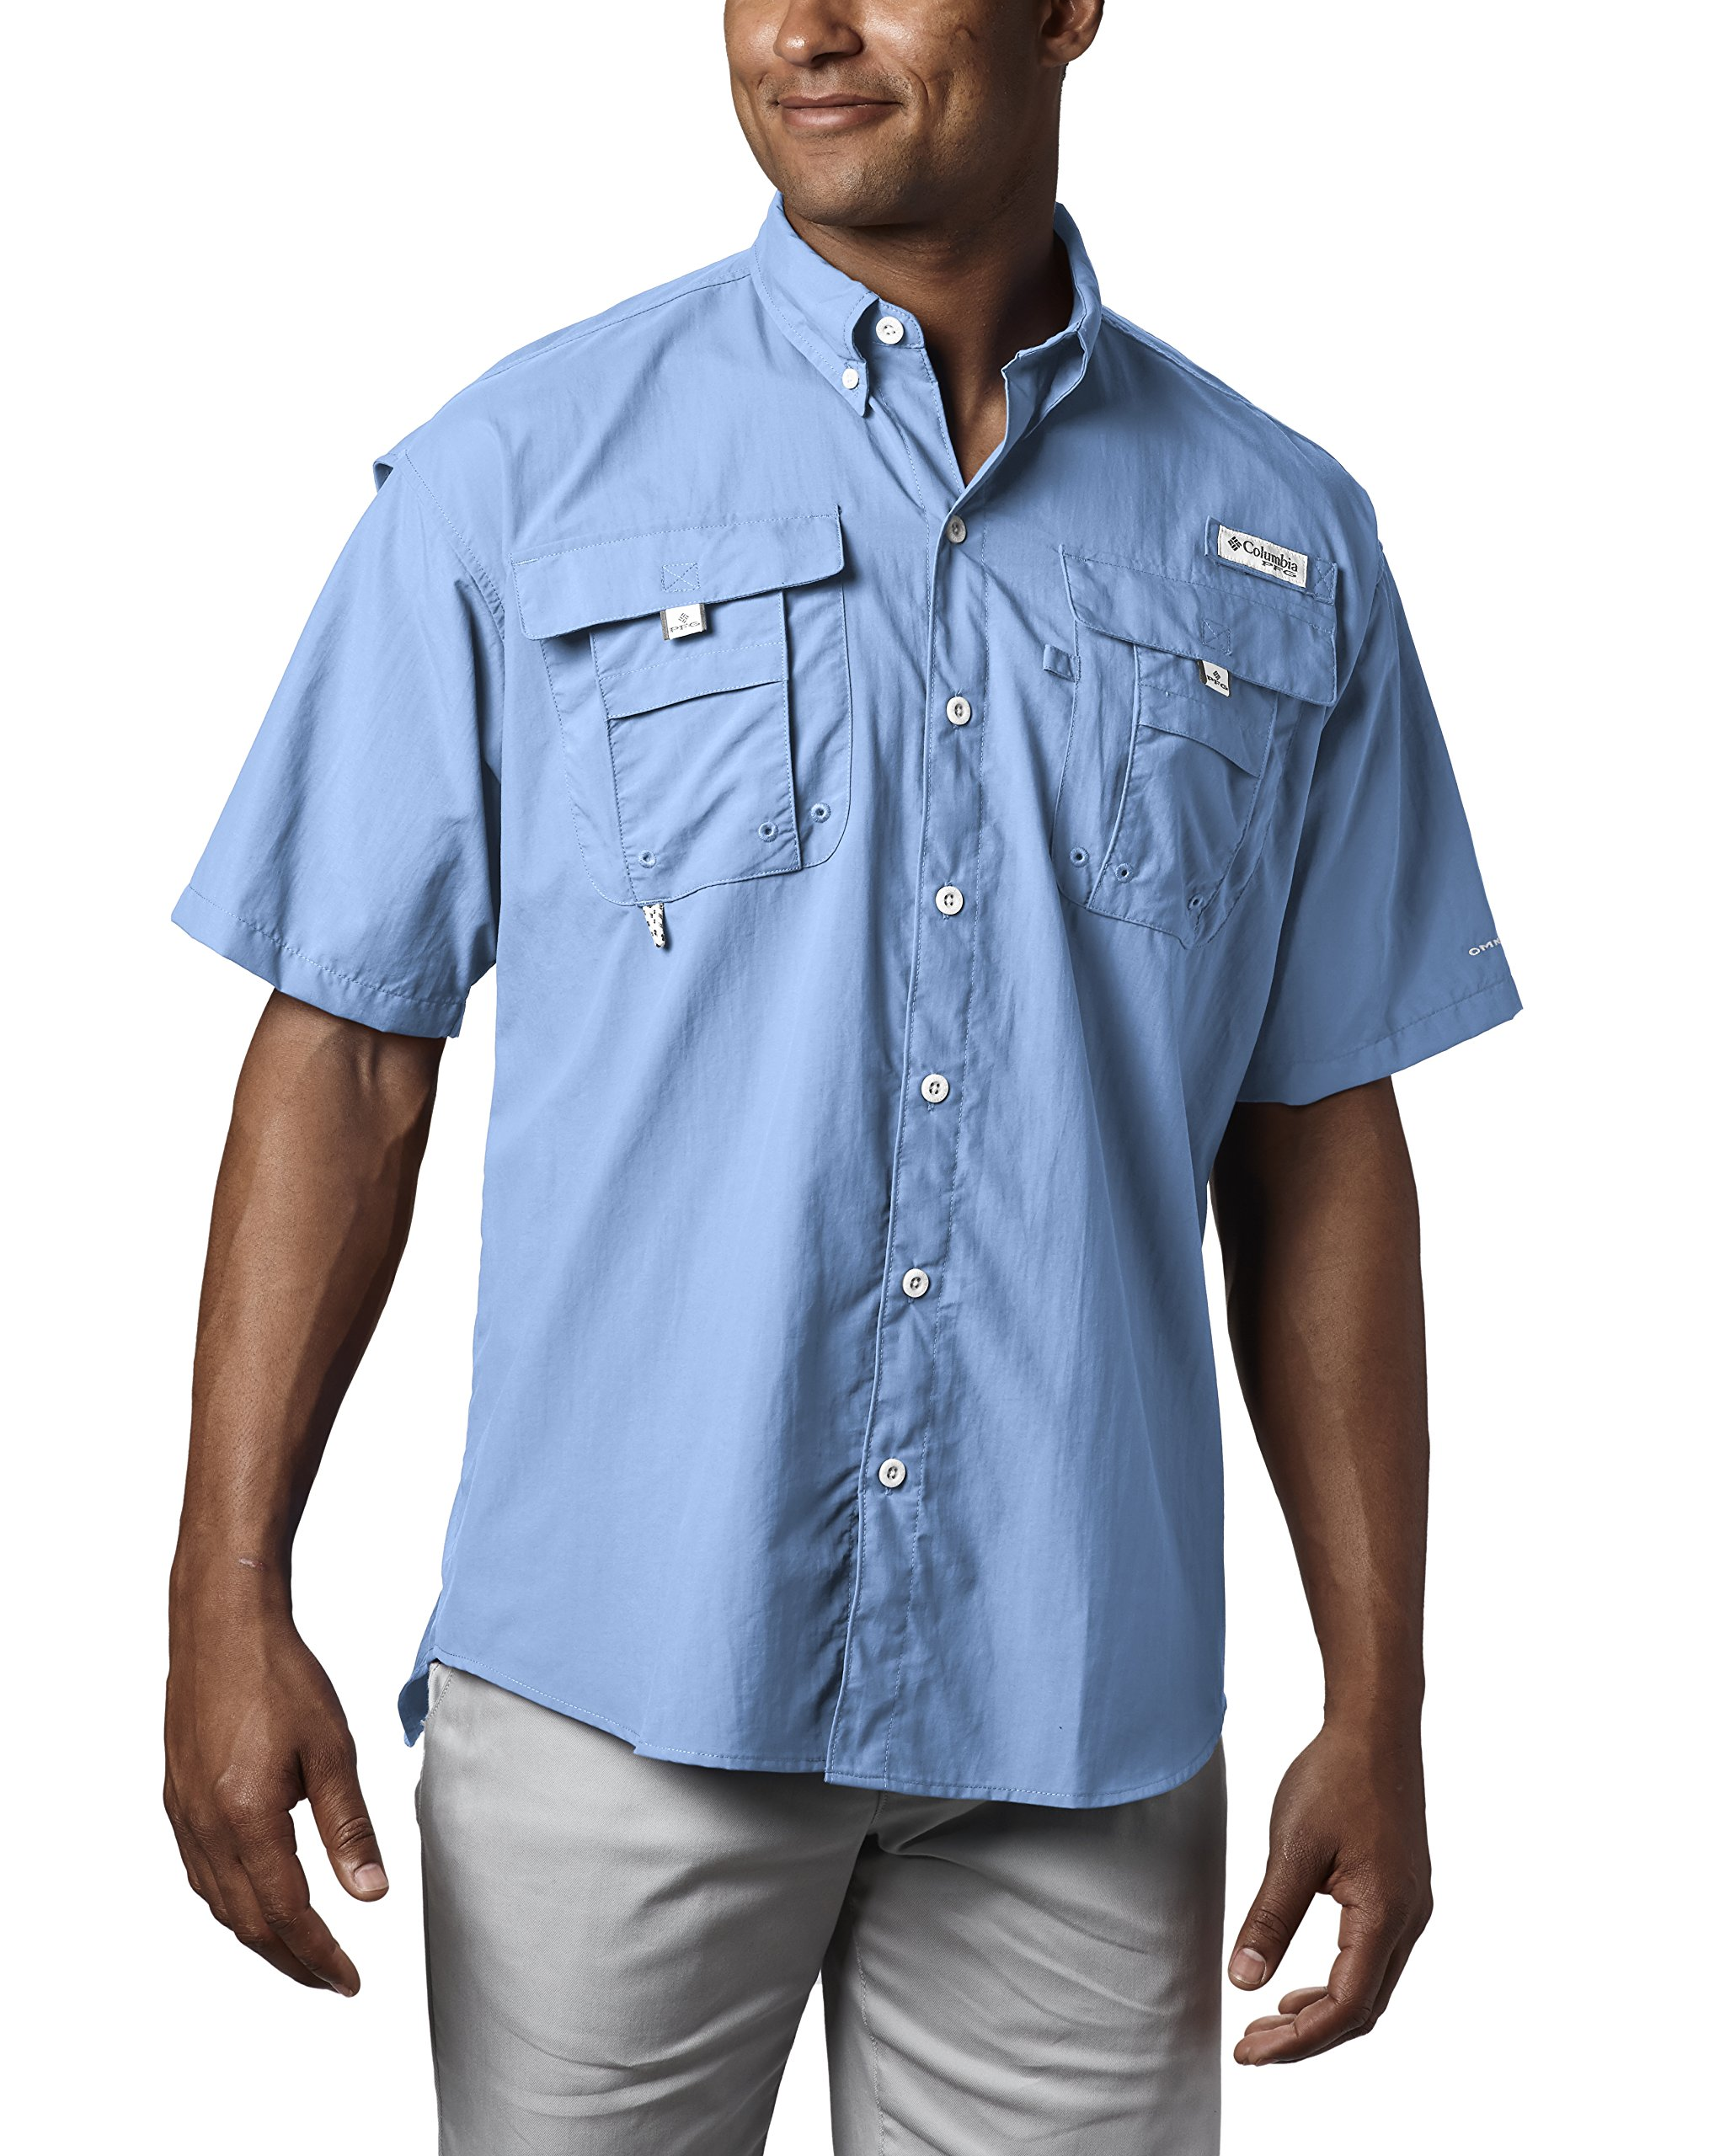 Columbia Men's Bahama II Short Sleeve Shirt, SAIL, Large